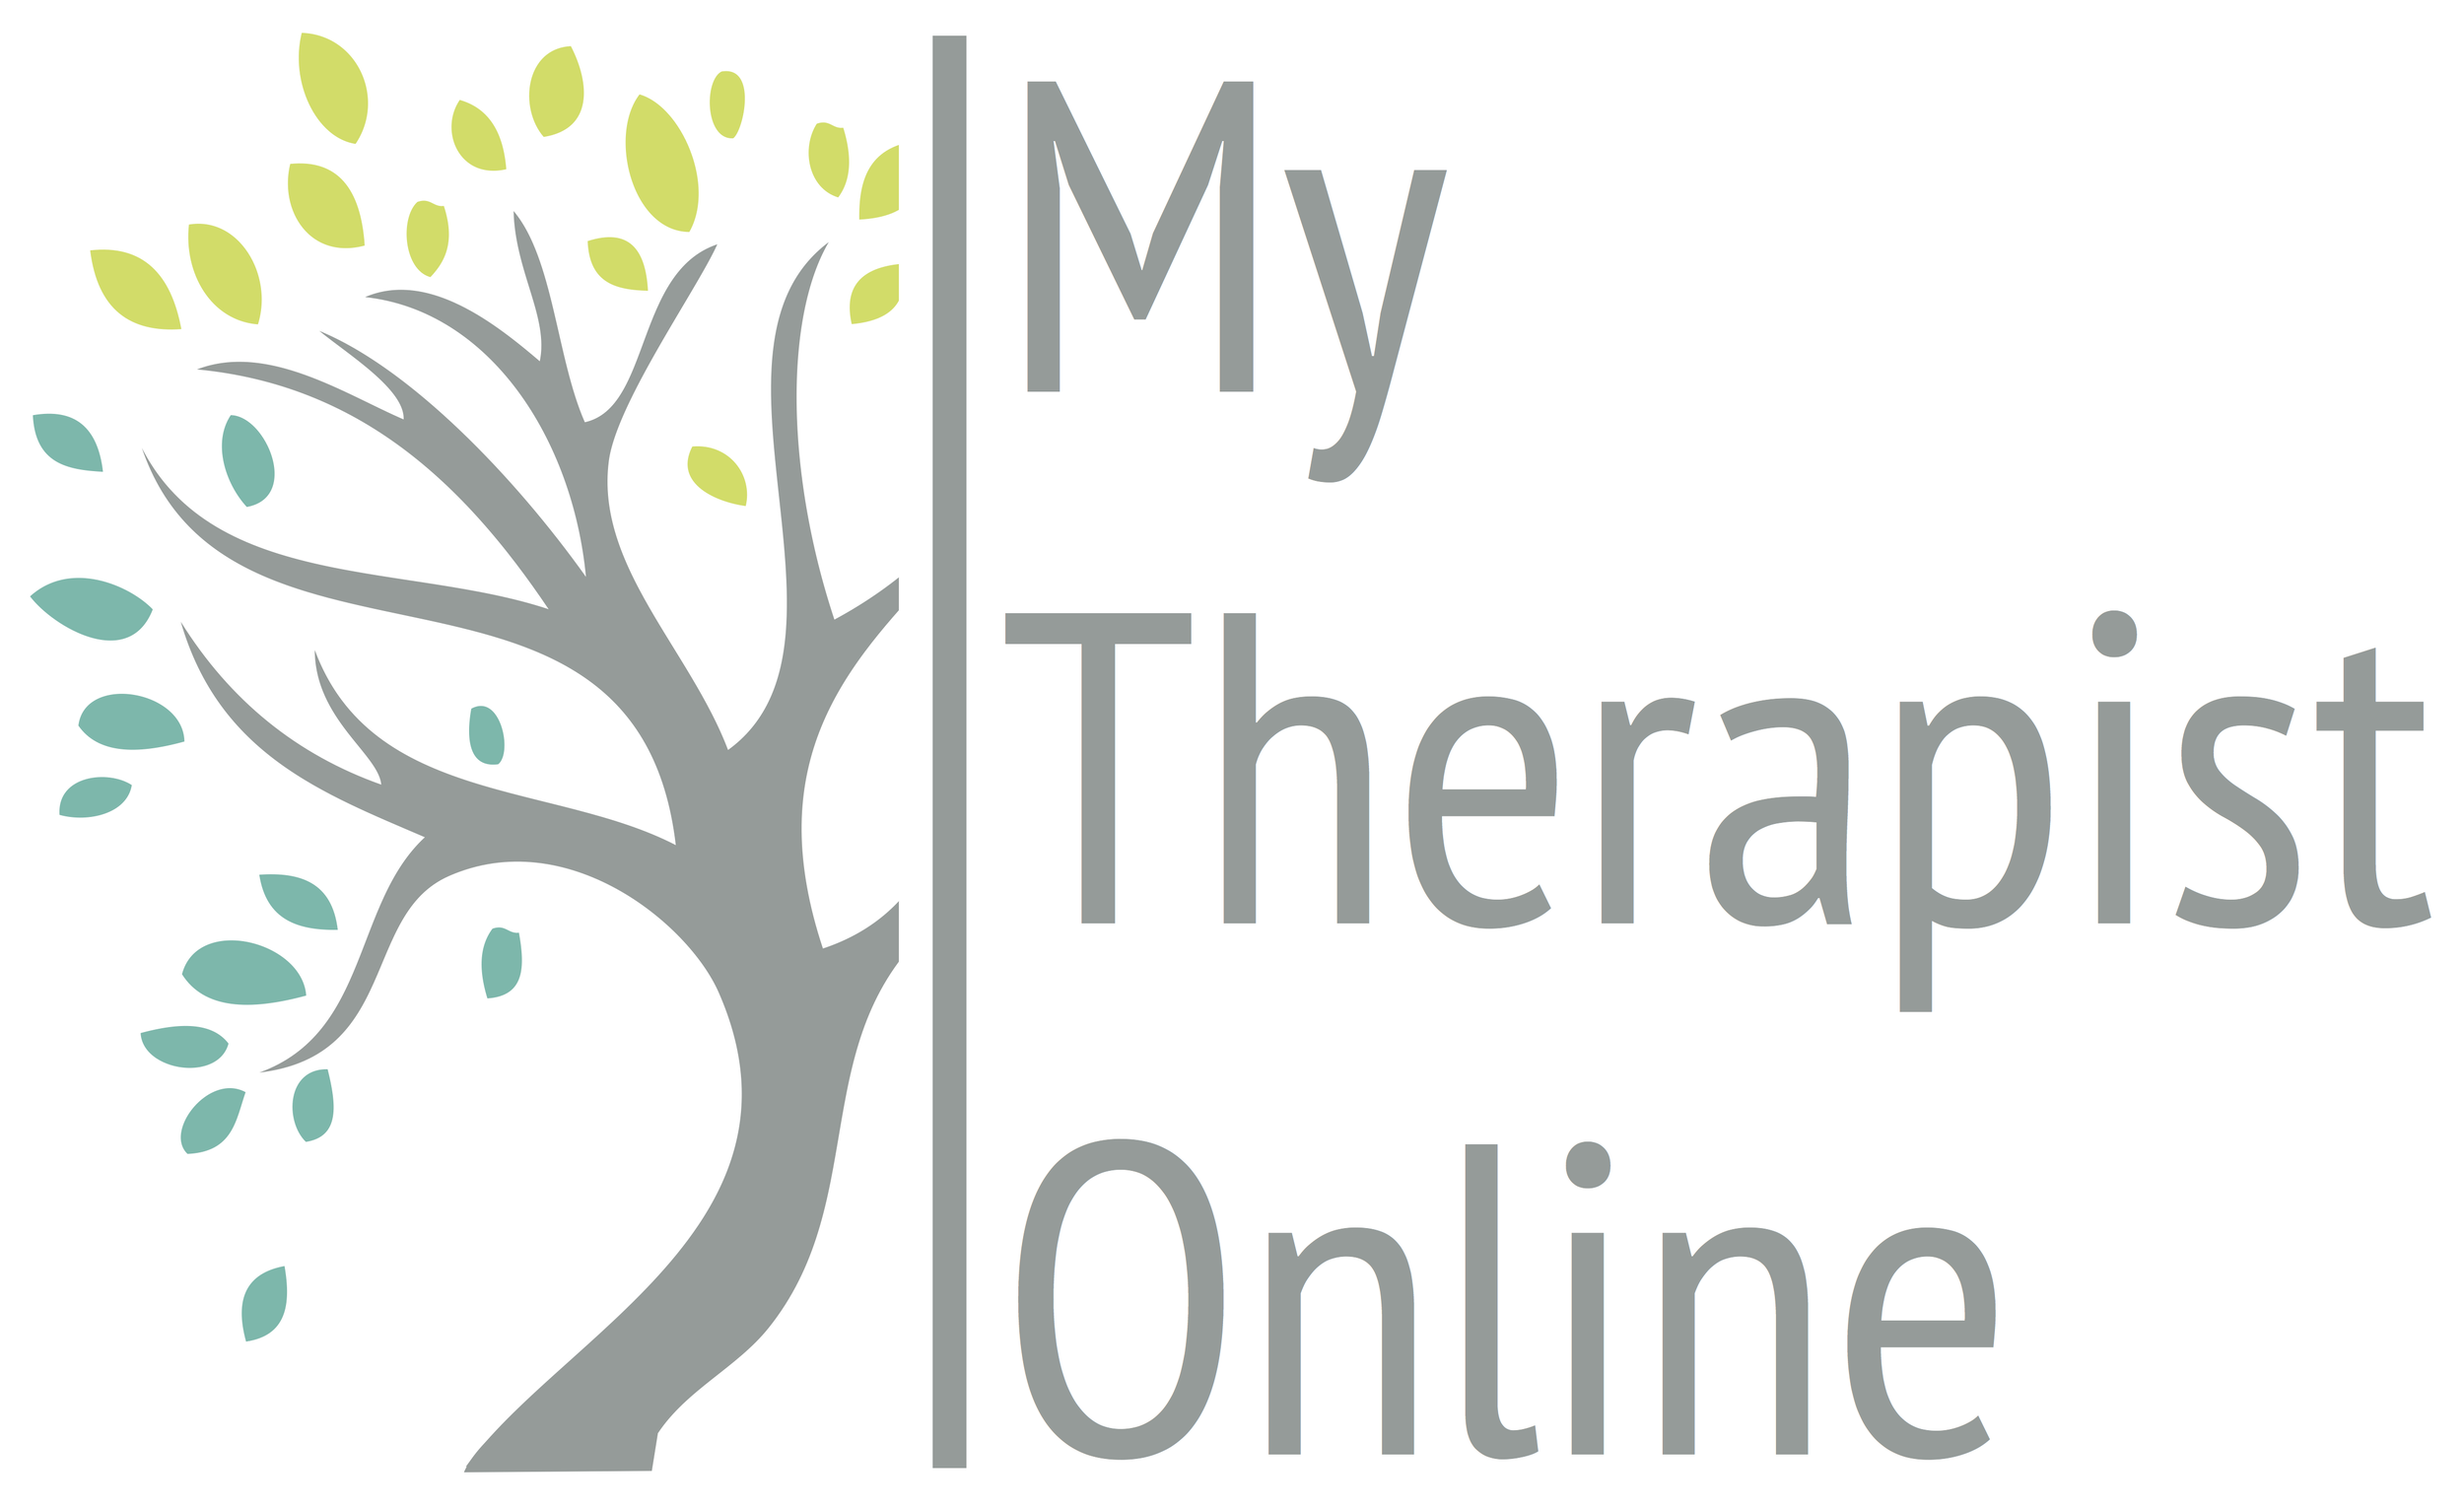 Online Therapy - My Therapist Online